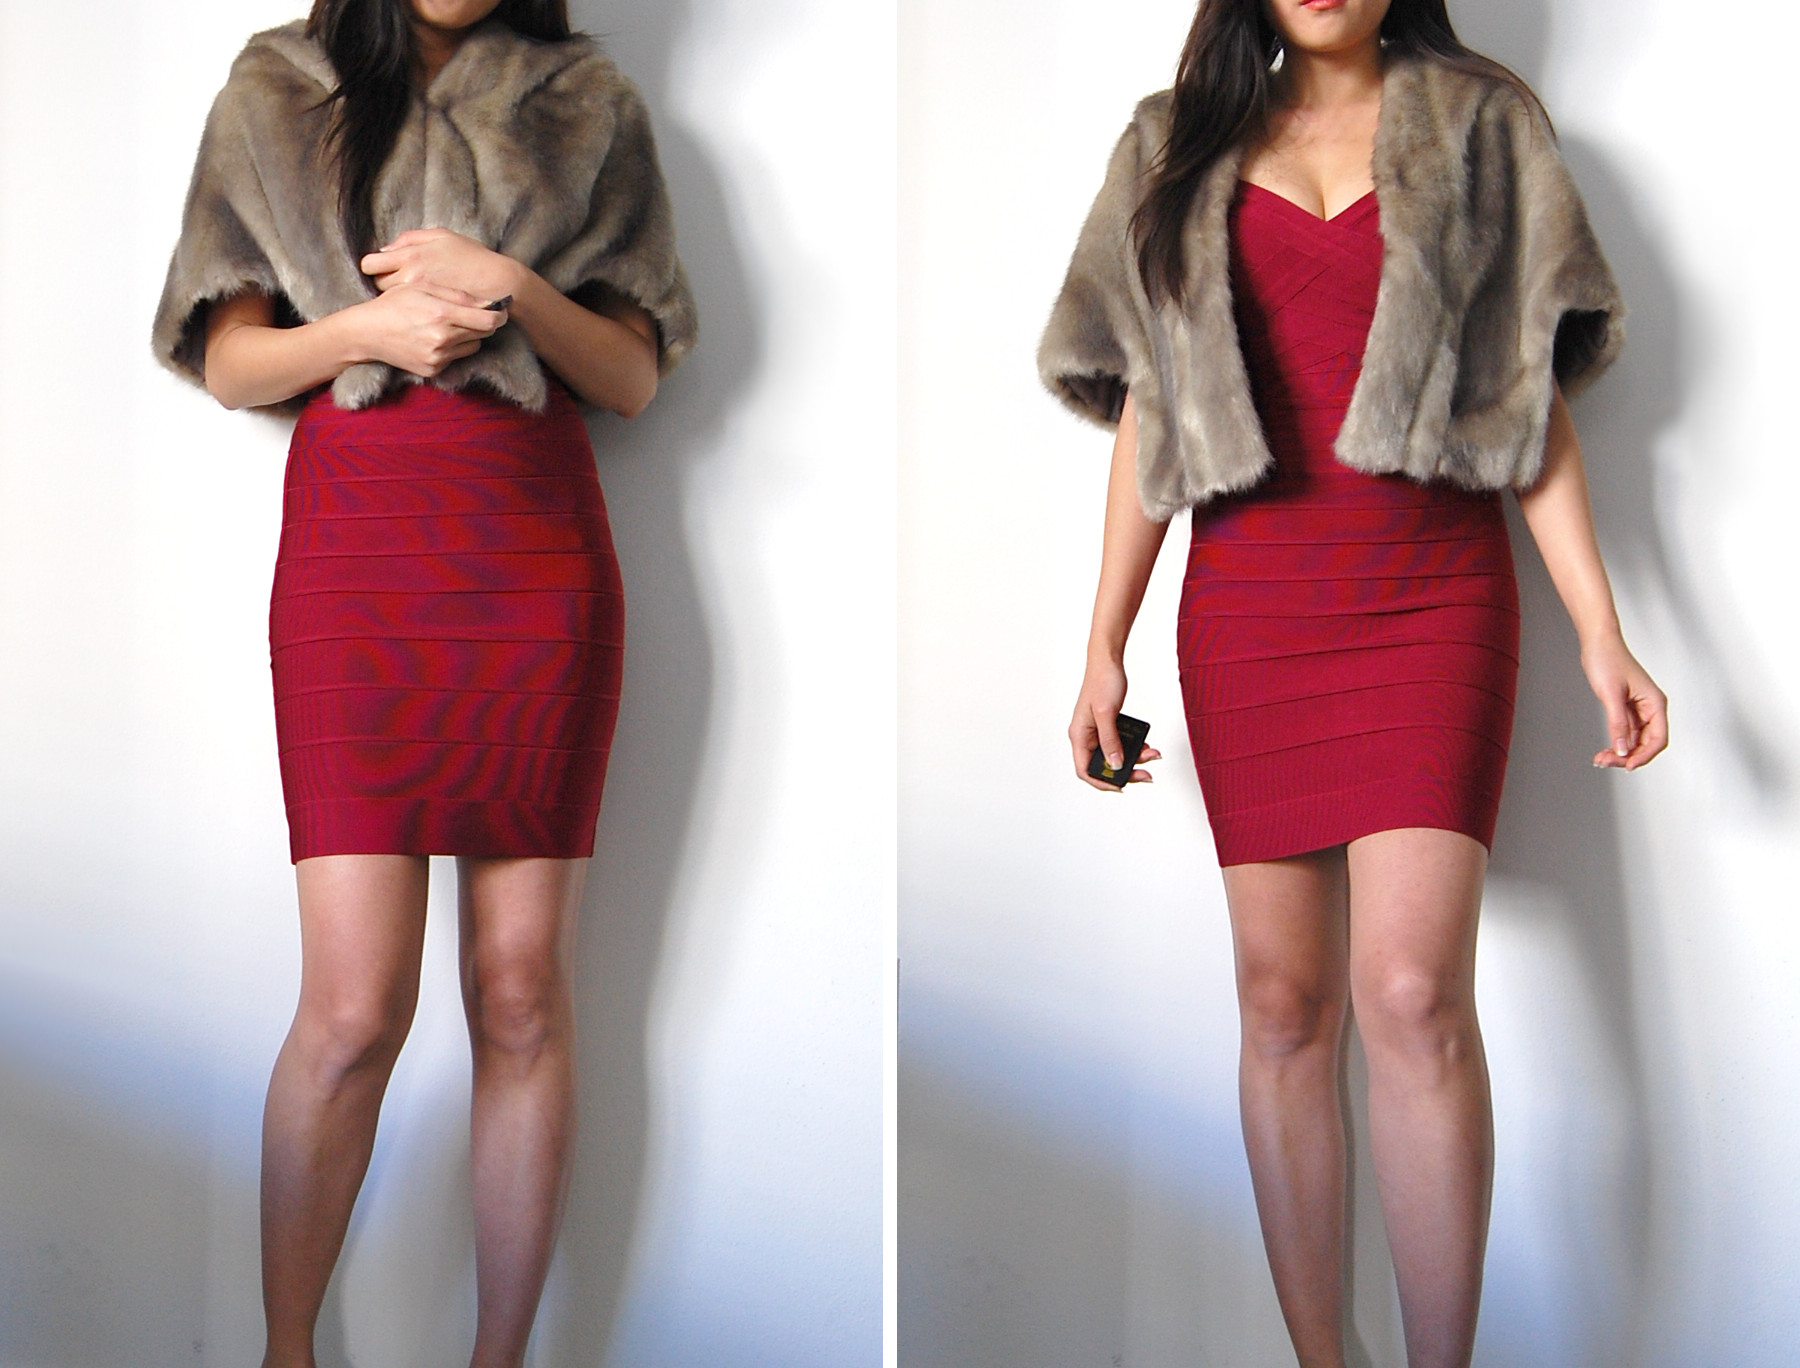 deep red bandage dress warm jacket for cold temperature